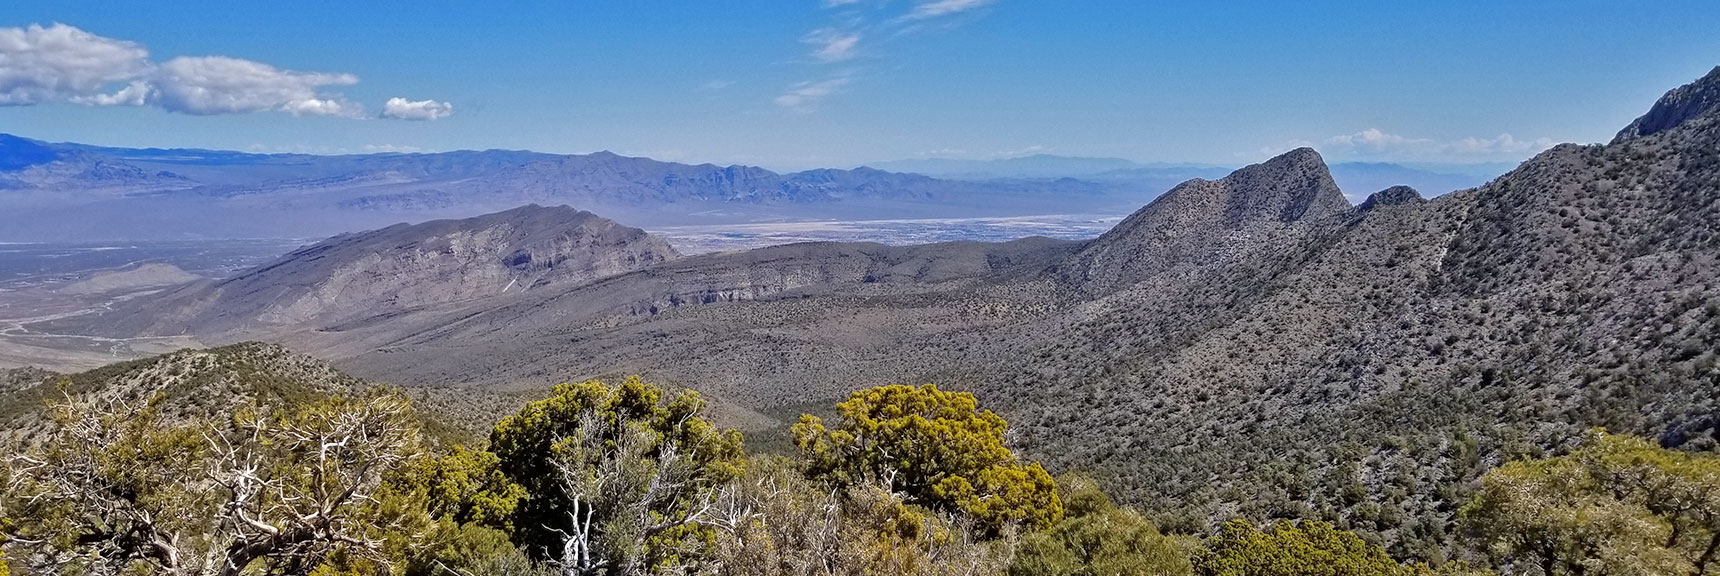 View of Gass Peak, North Las Vegas Valley and La Madre Mountains from Just North of La Madre Mt., Nevada